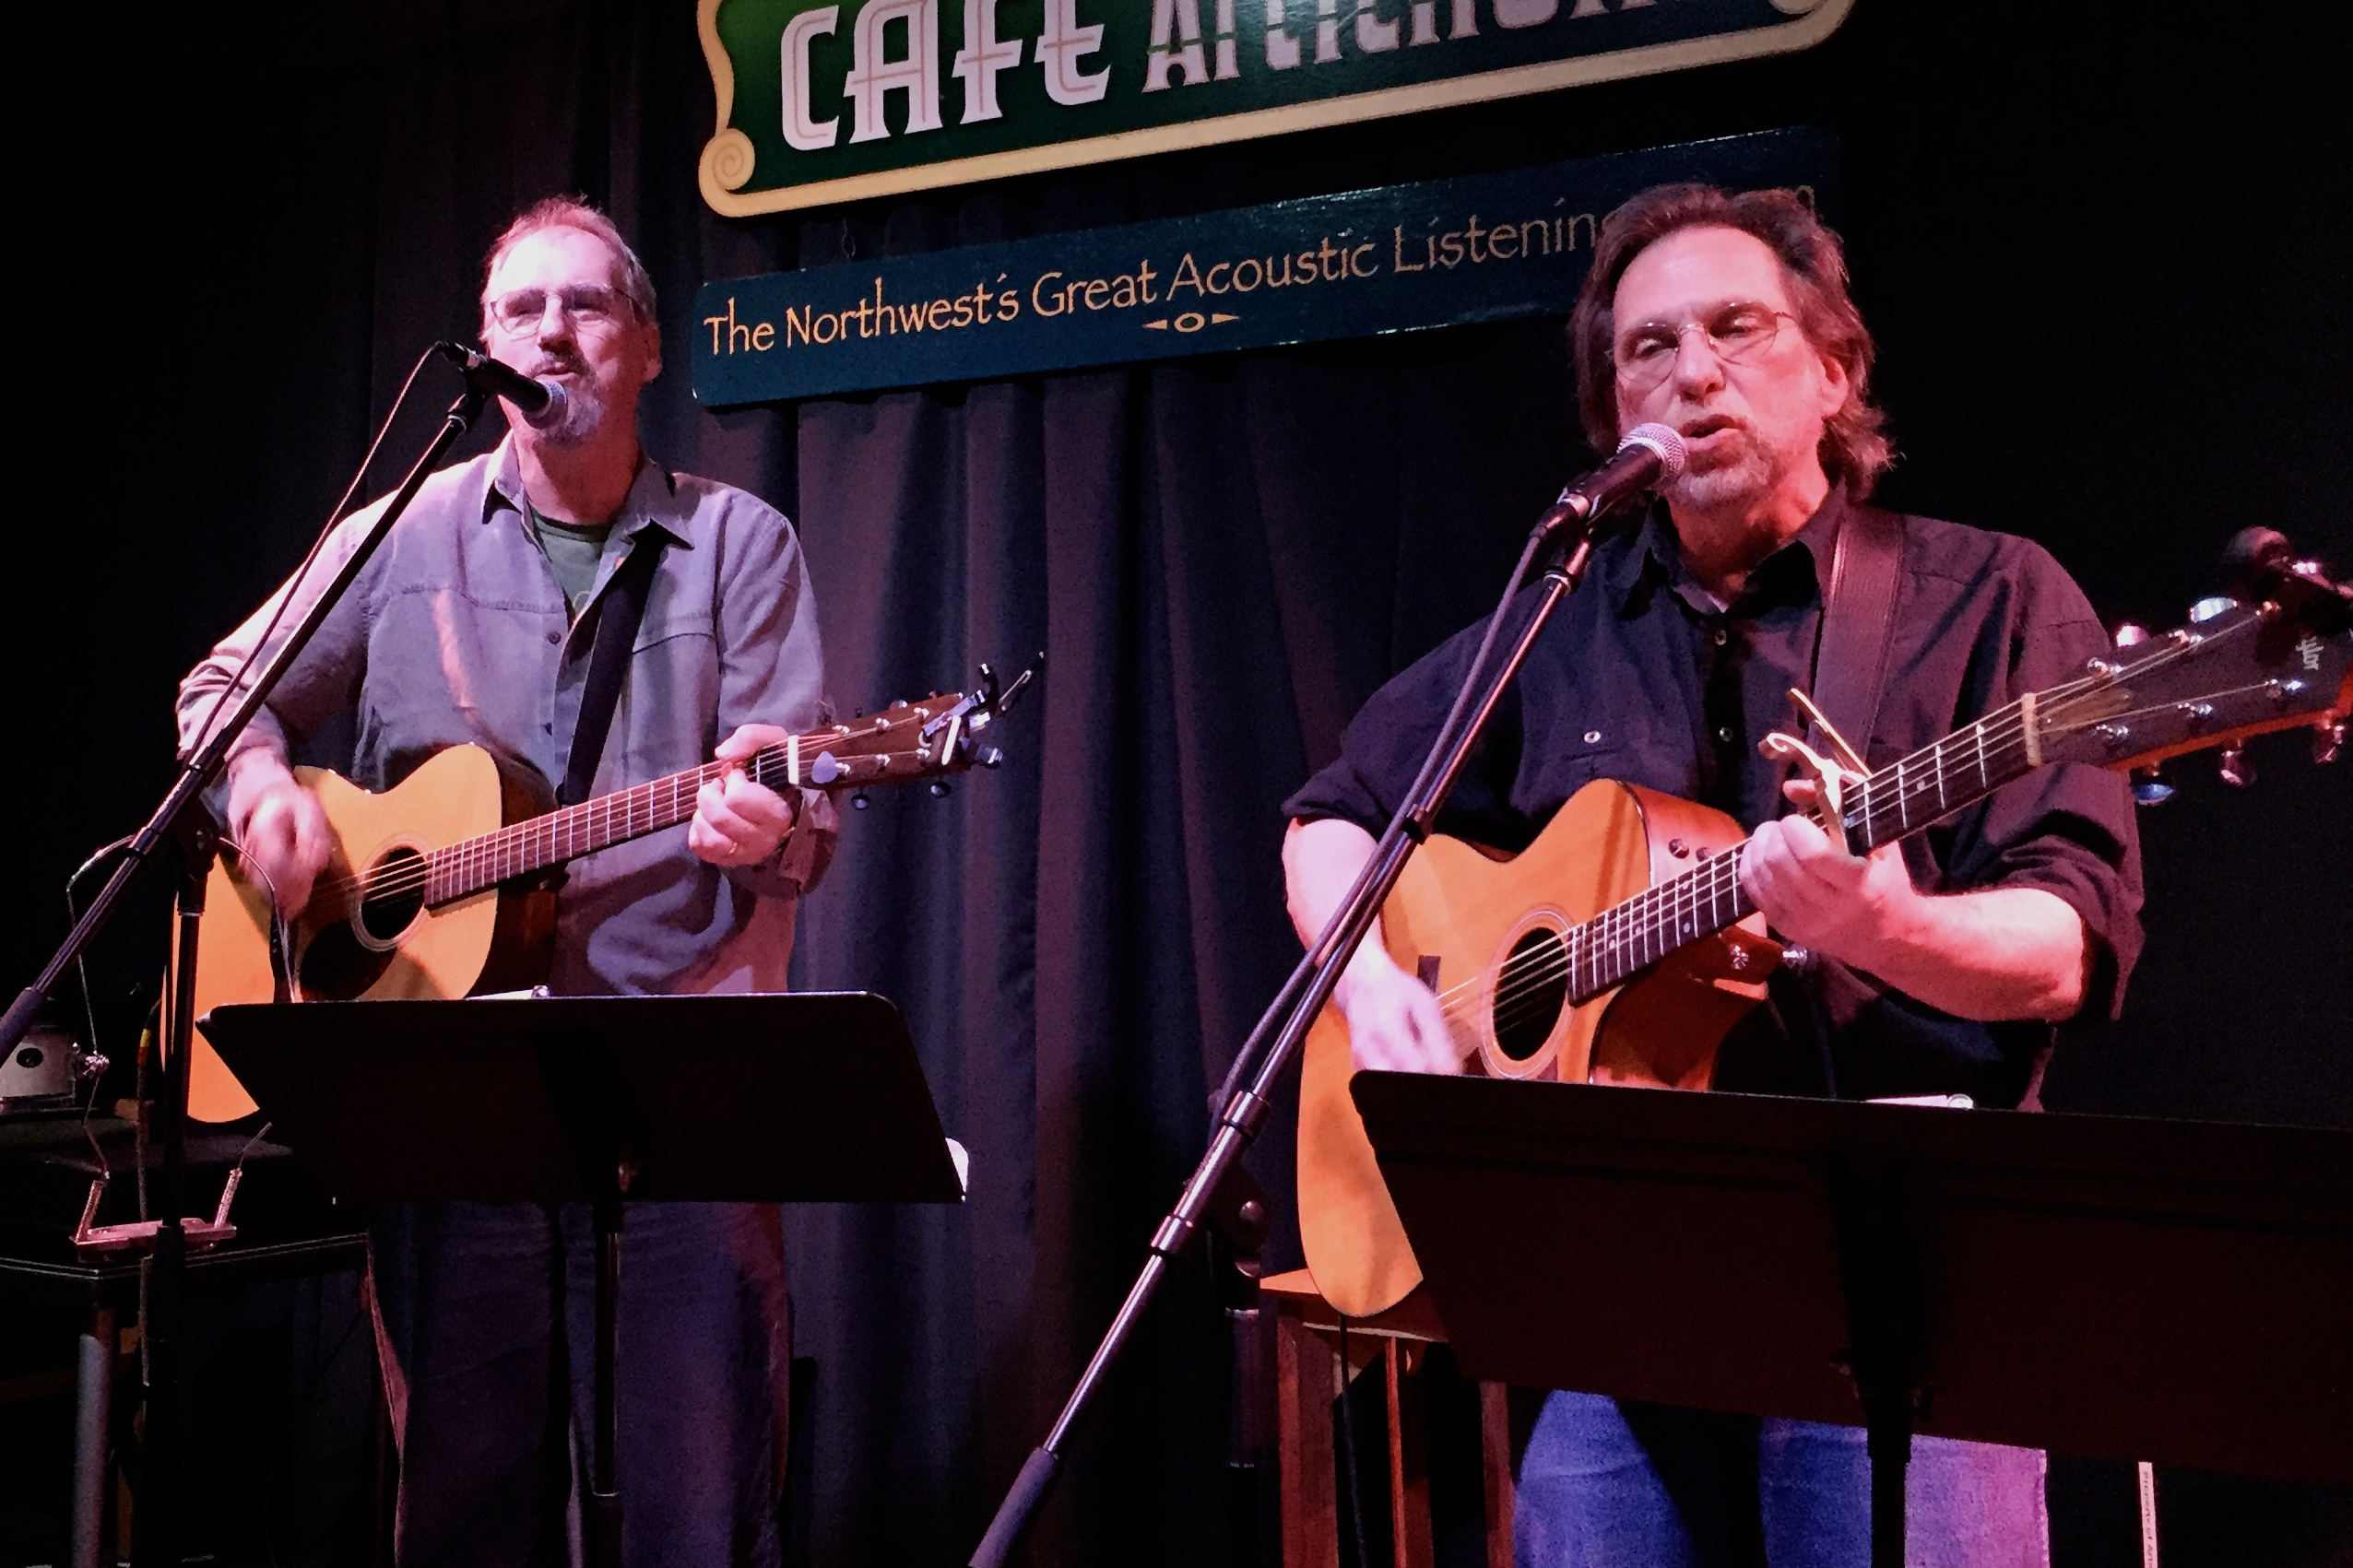 The Welldiggers - Live at Artichoke Cafe